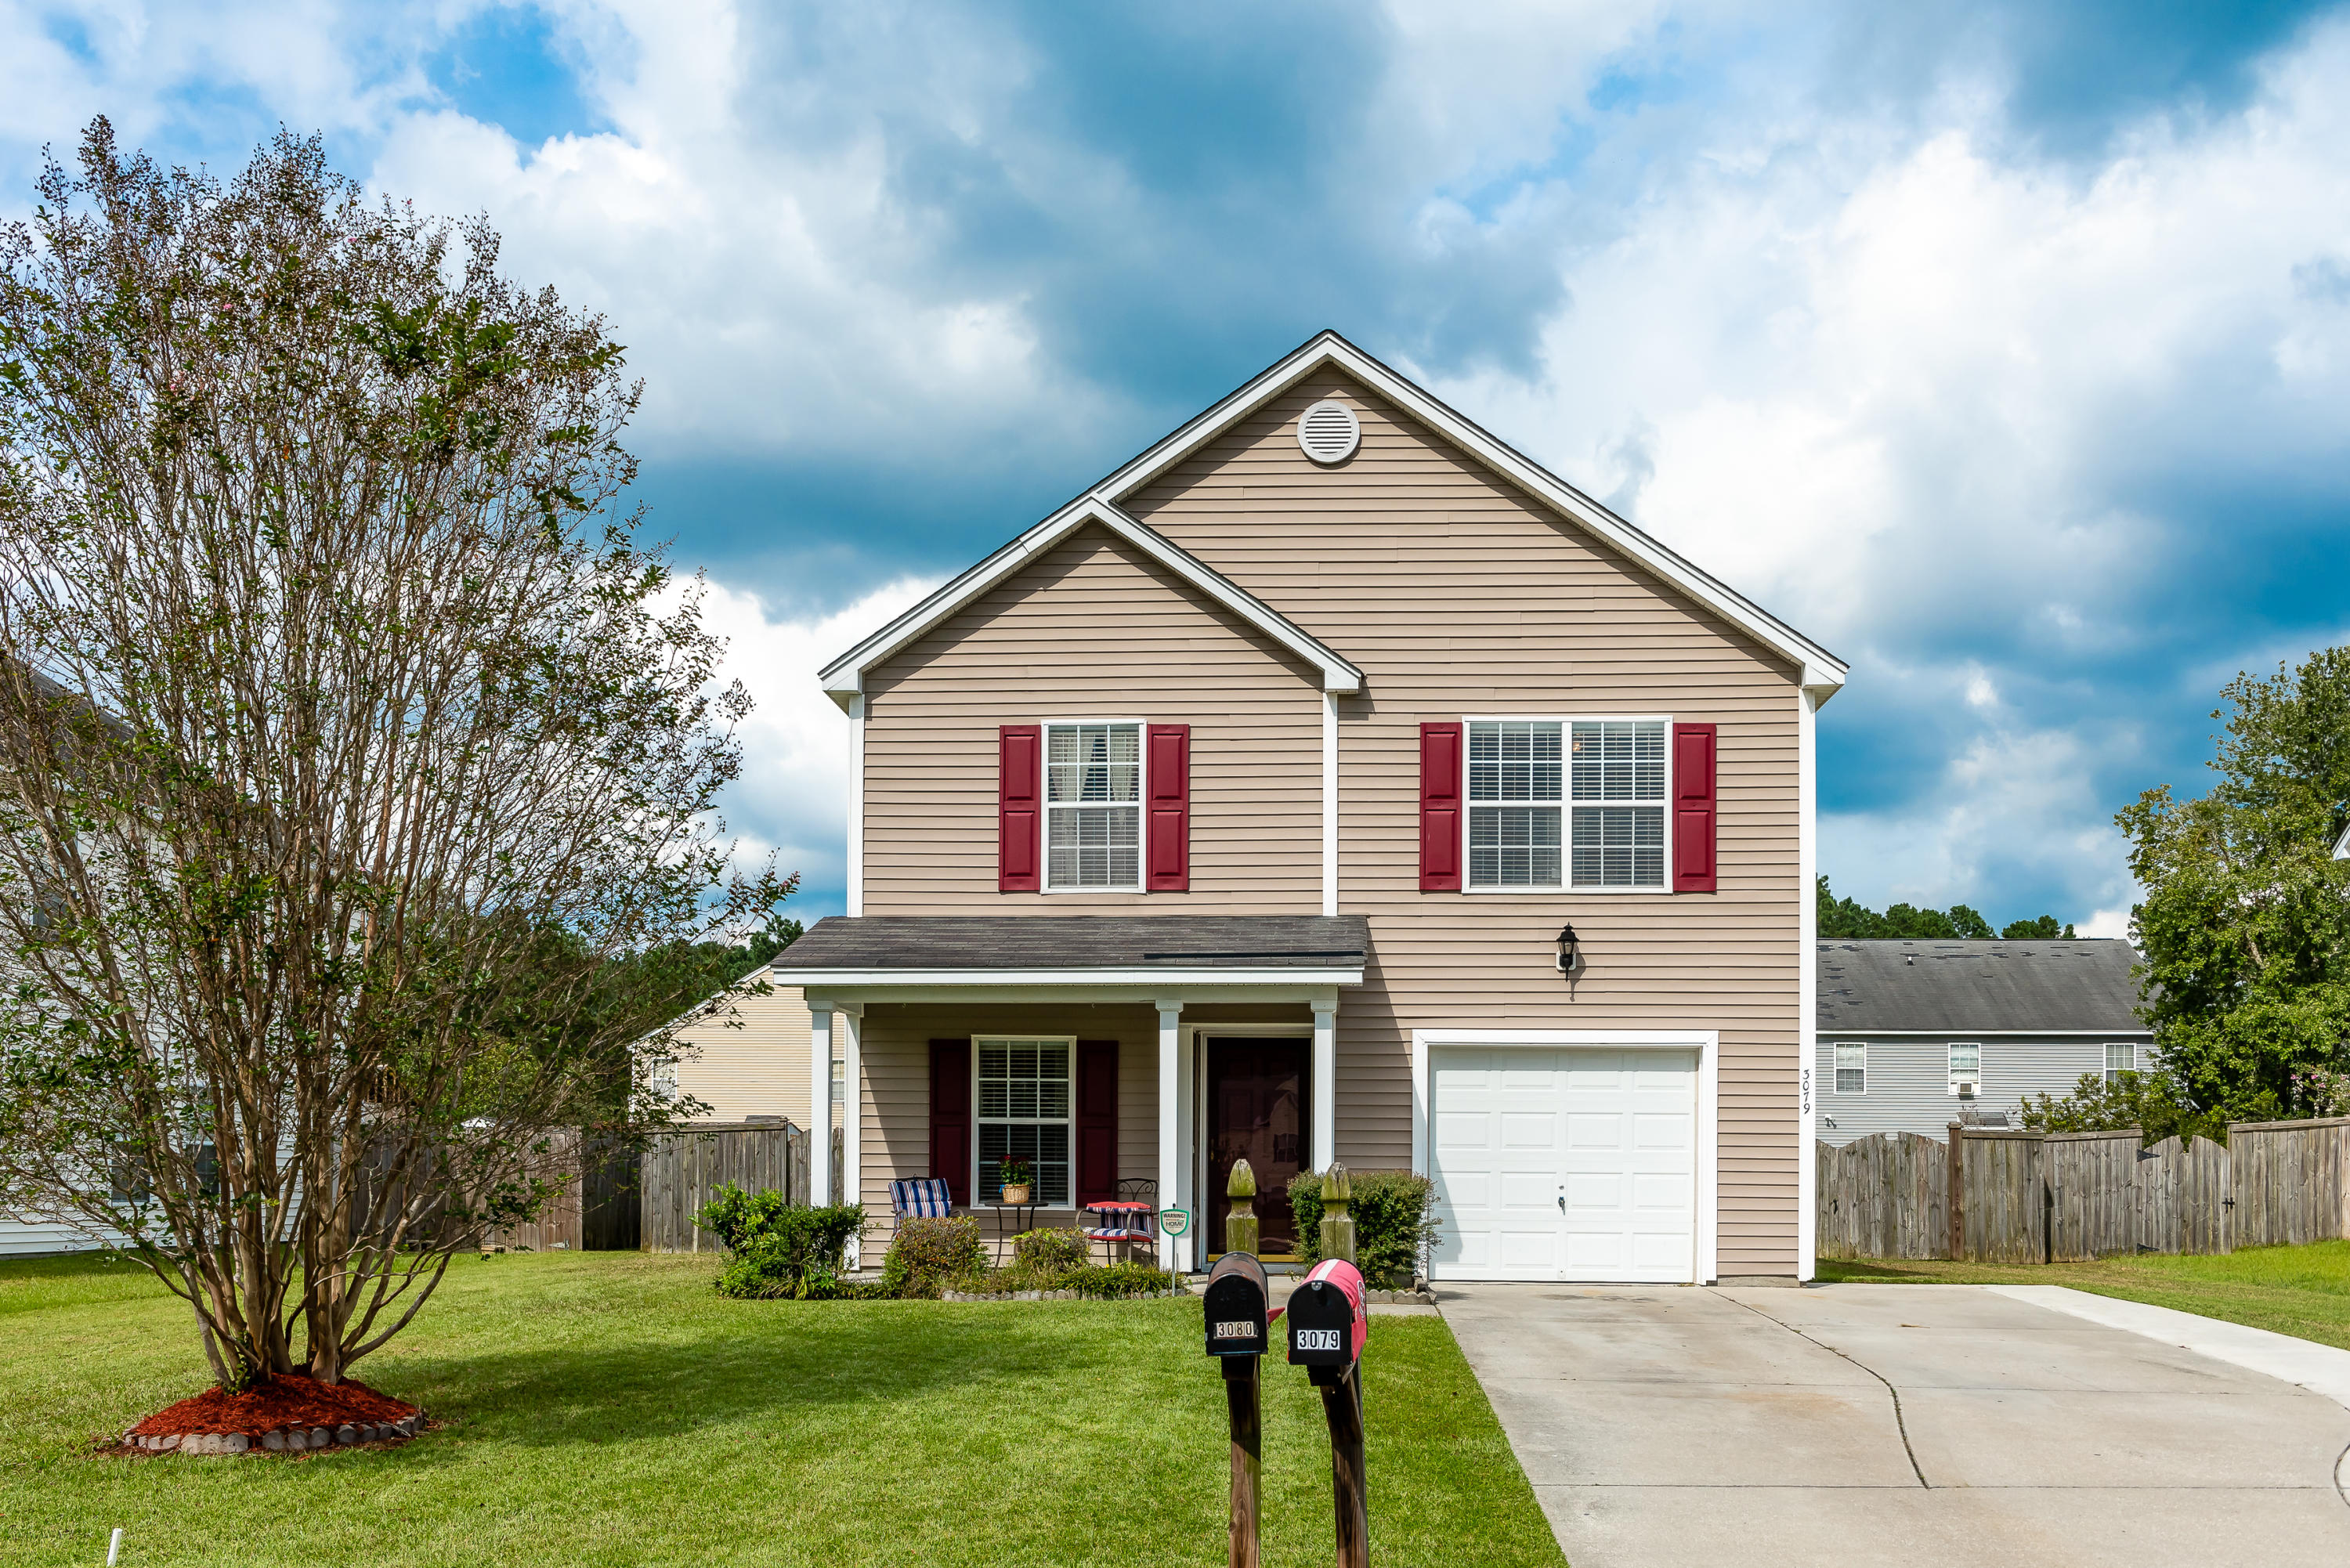 3079 Maple Leaf Drive Moncks Corner, Sc 29461